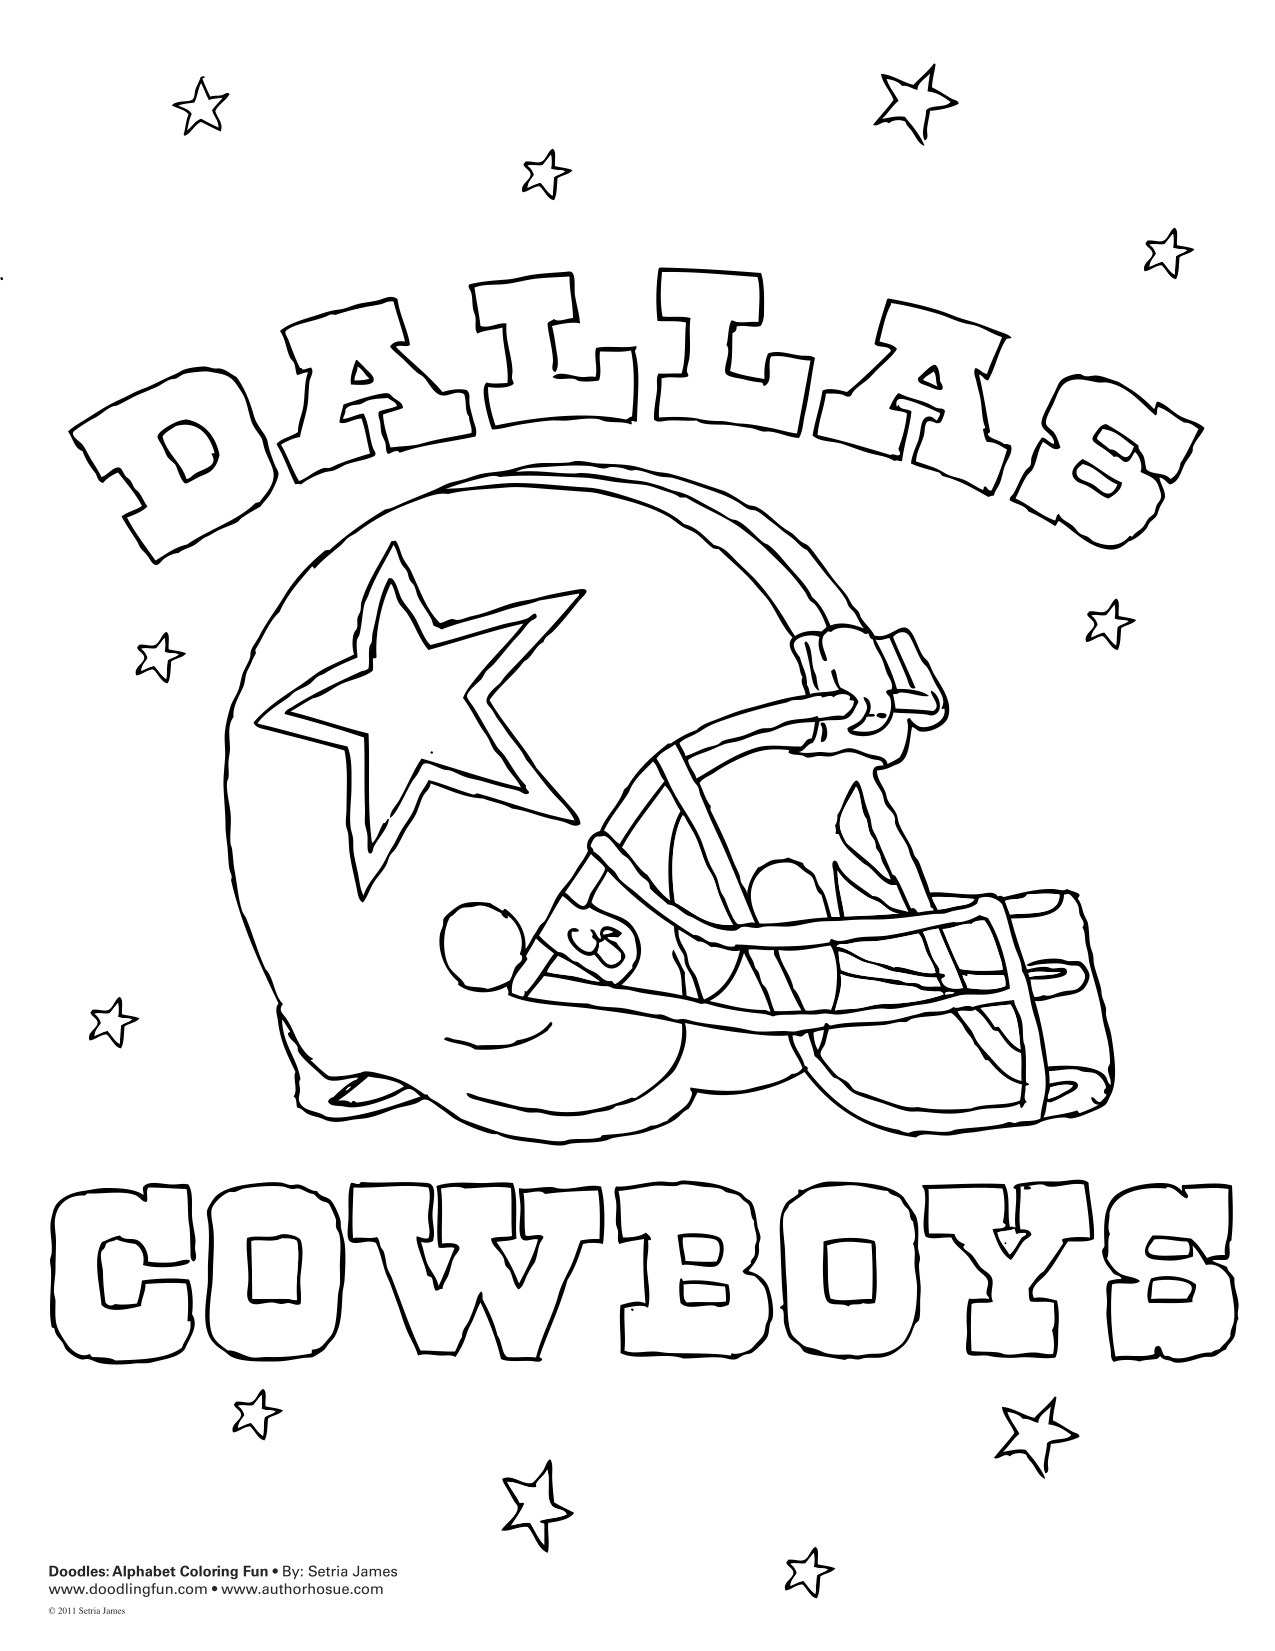 Football fans coloring sheet doodles ave for Texas a m coloring pages